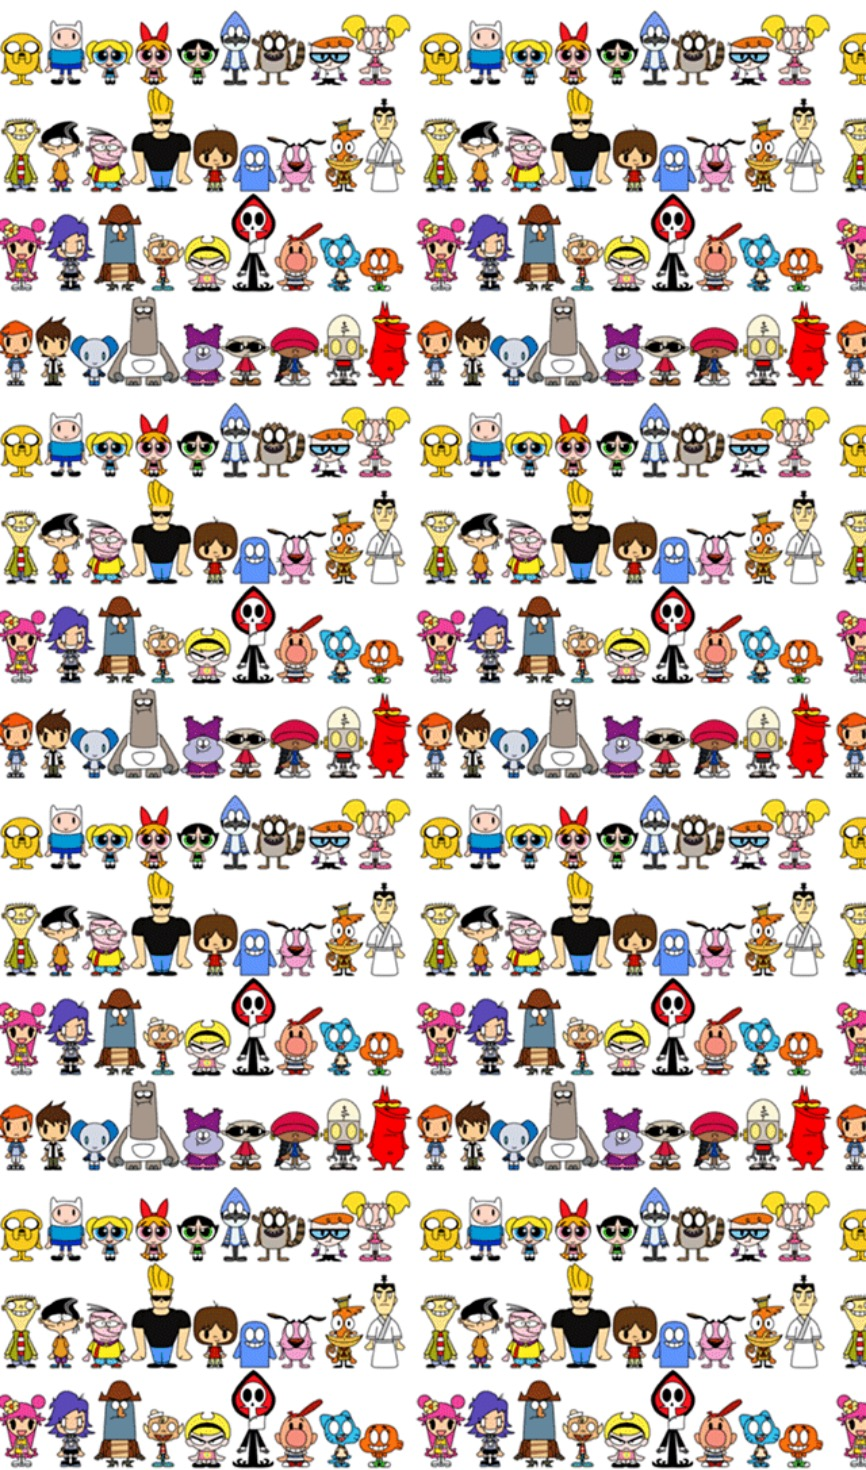 Cartoon Network Characters Patternsbackgroundswallpaper